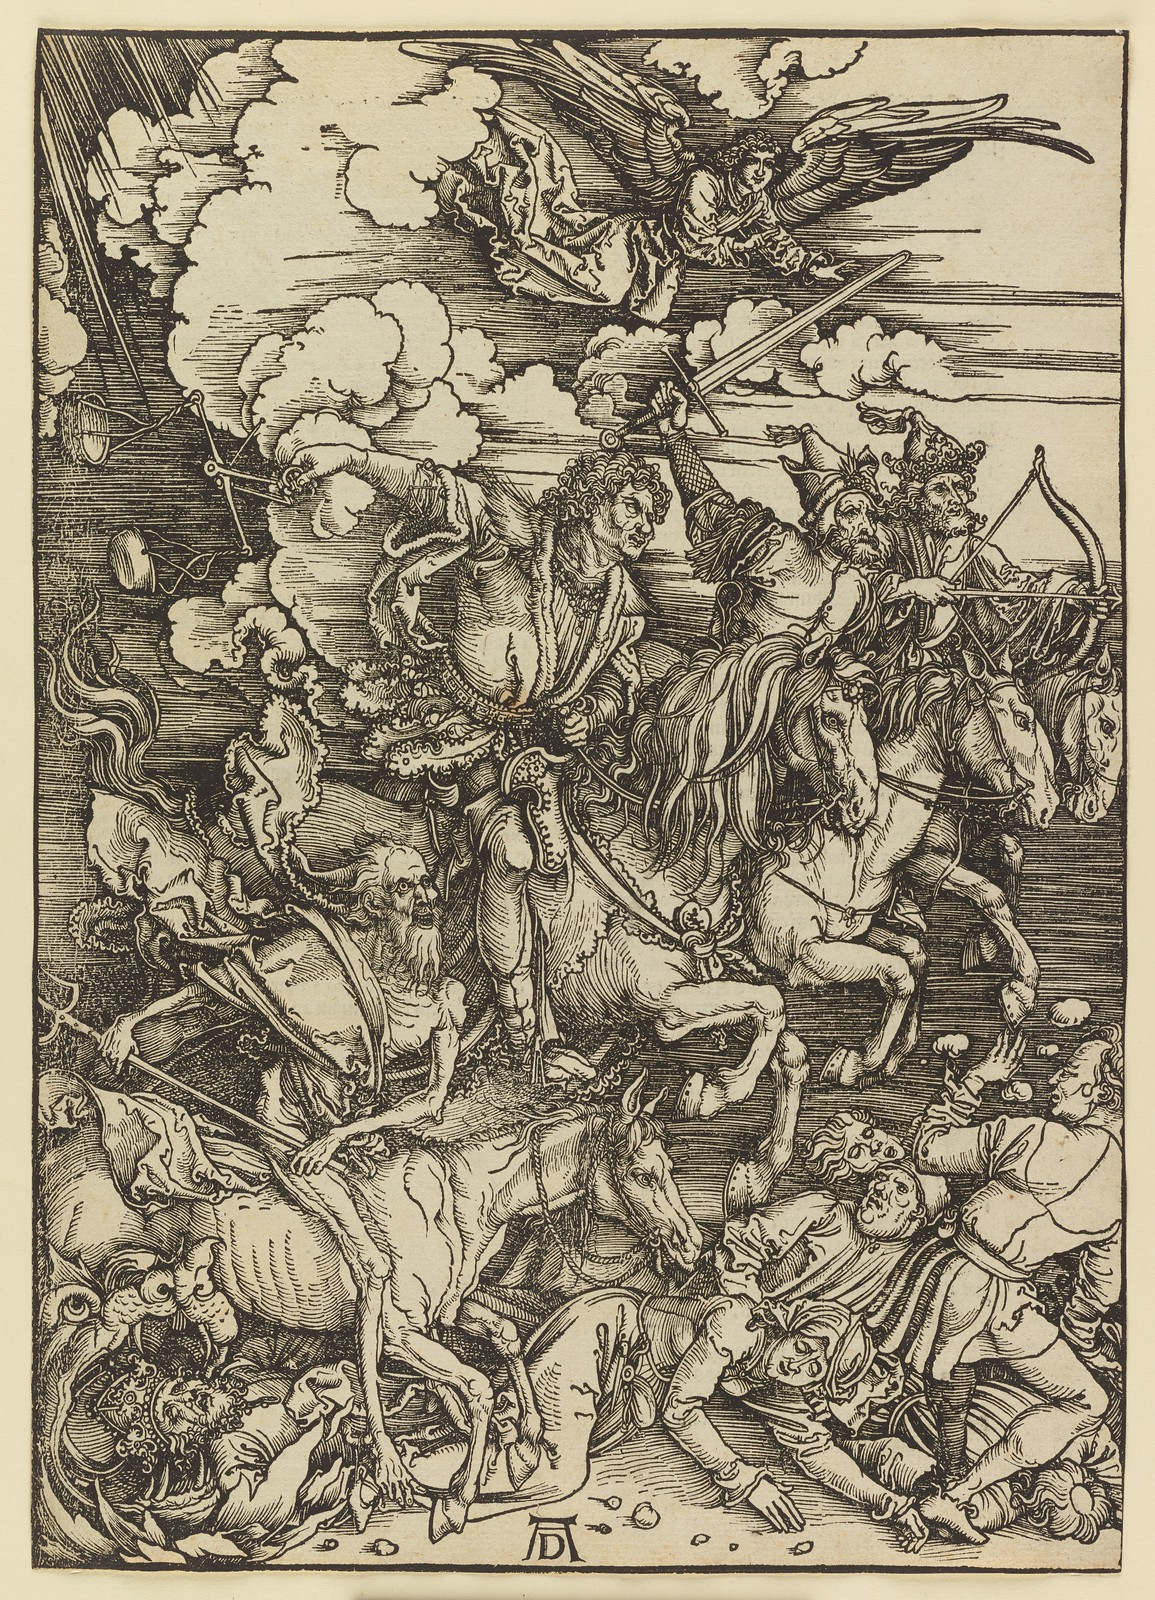 Albrecht Dürer - The Four Horsemen, Plate four of fifteen from the Latin edition of The Apocalypse series, printed 1511